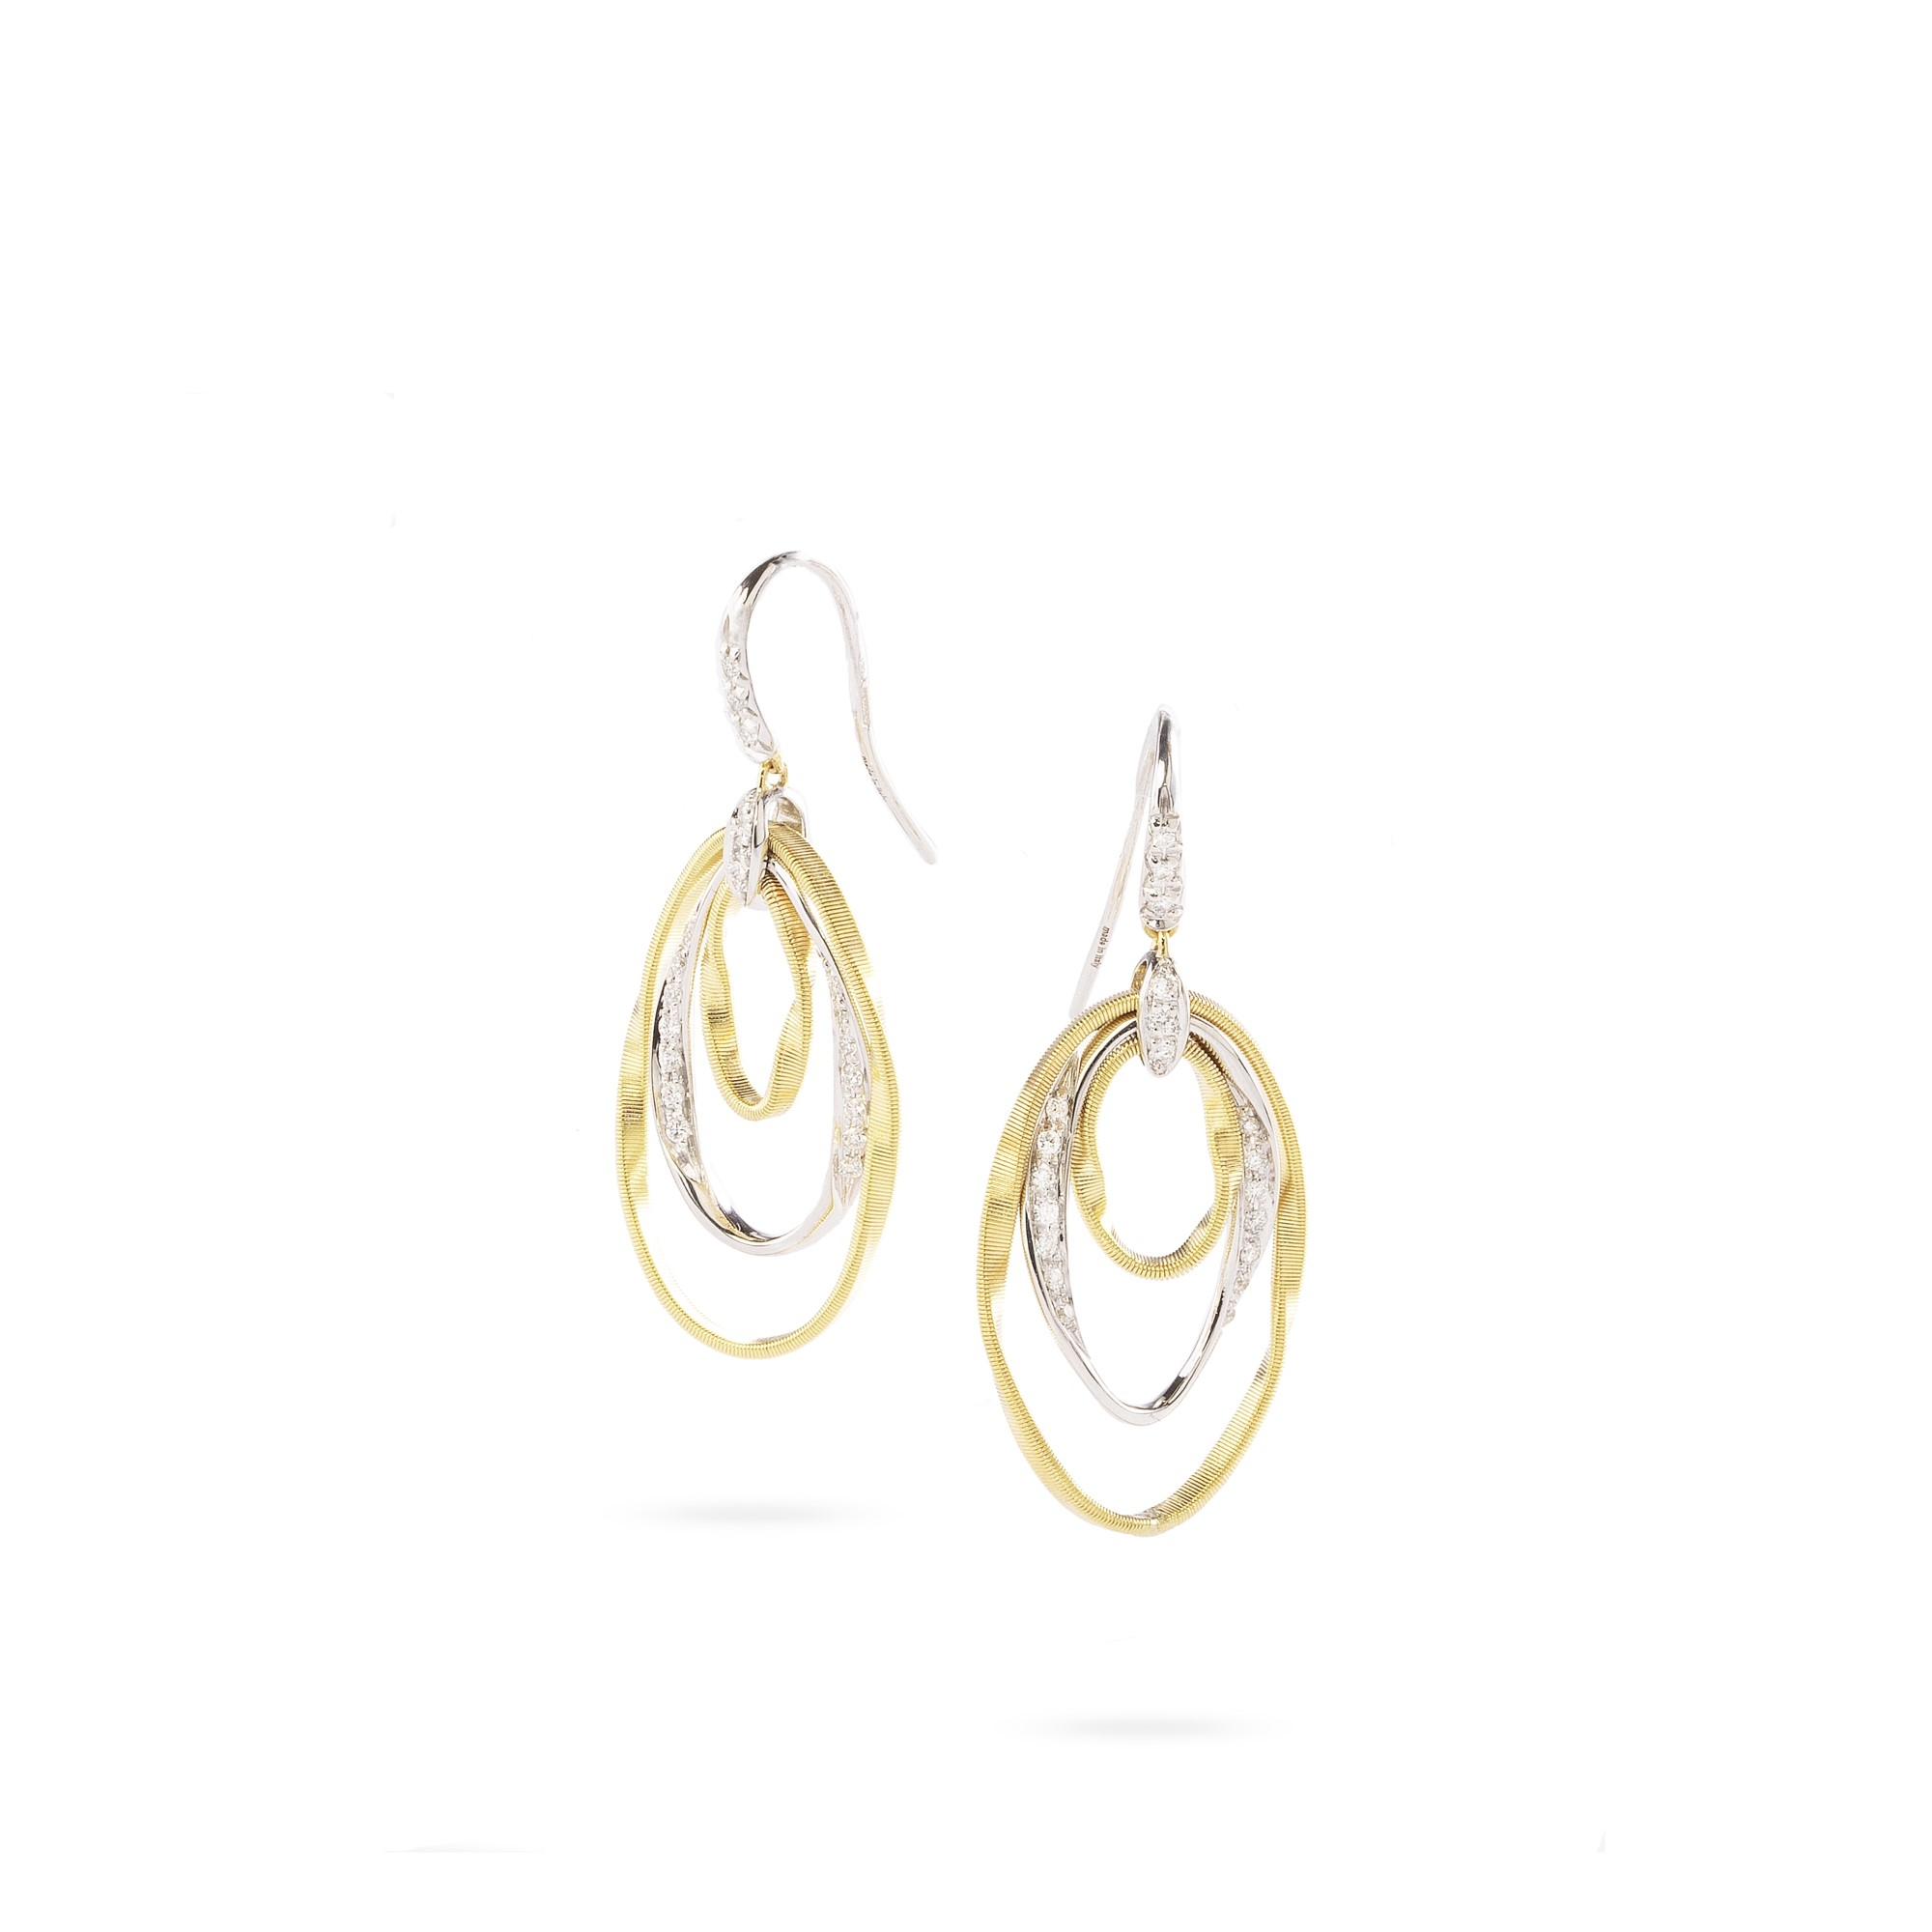 Marco Bicego 18K Yellow Gold .31cts  Diamonds Gold Earrings with Stones OG387-A B YW